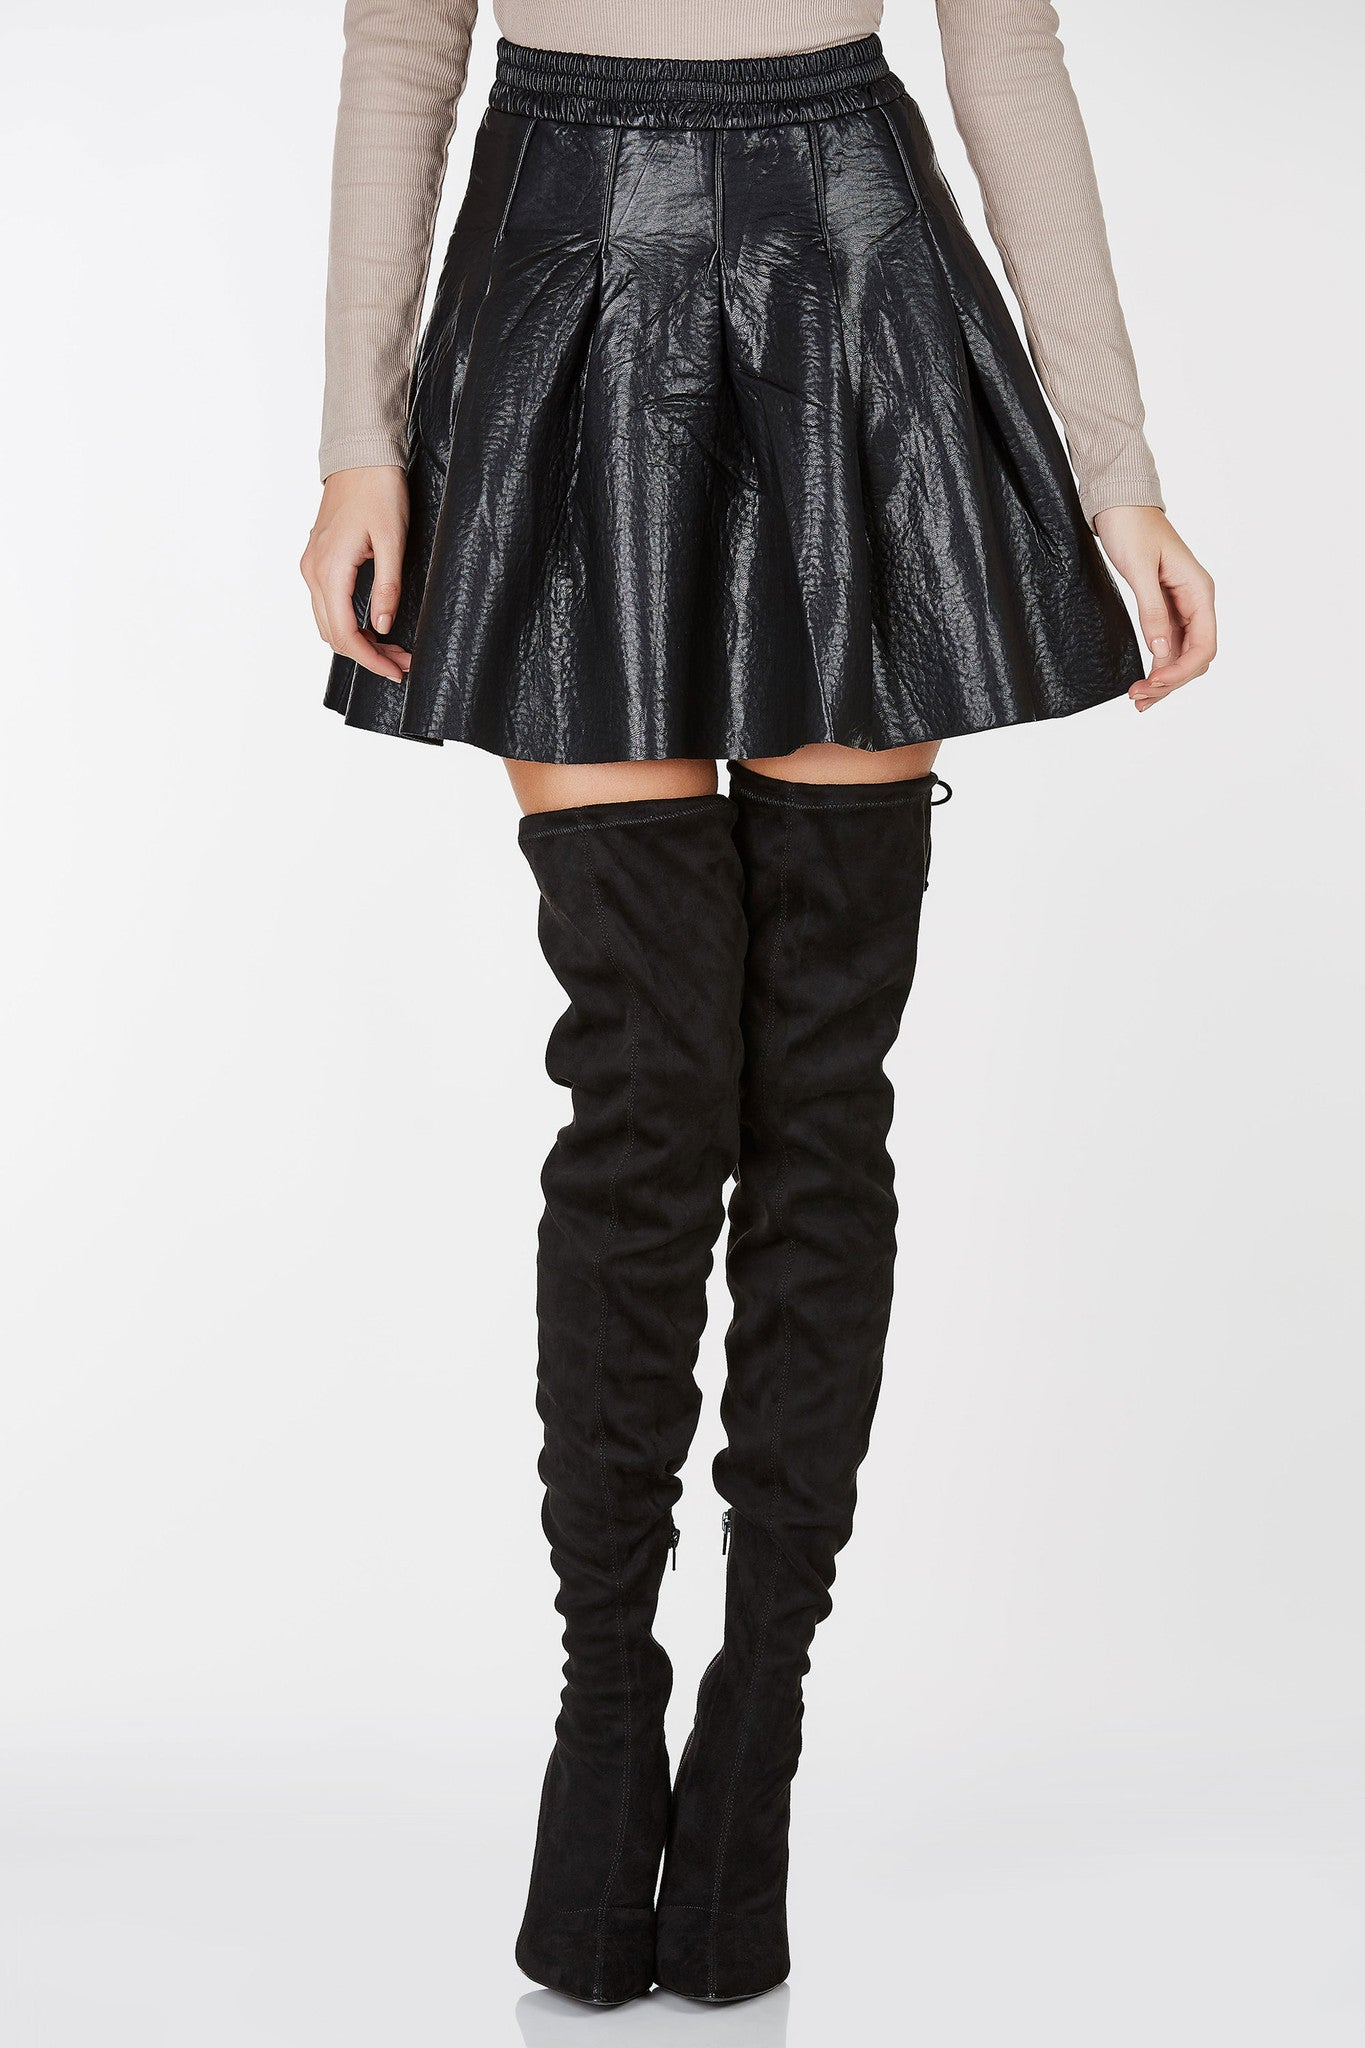 Pleated skater skirt silhouette. Elastic waistband with back zipper closure.